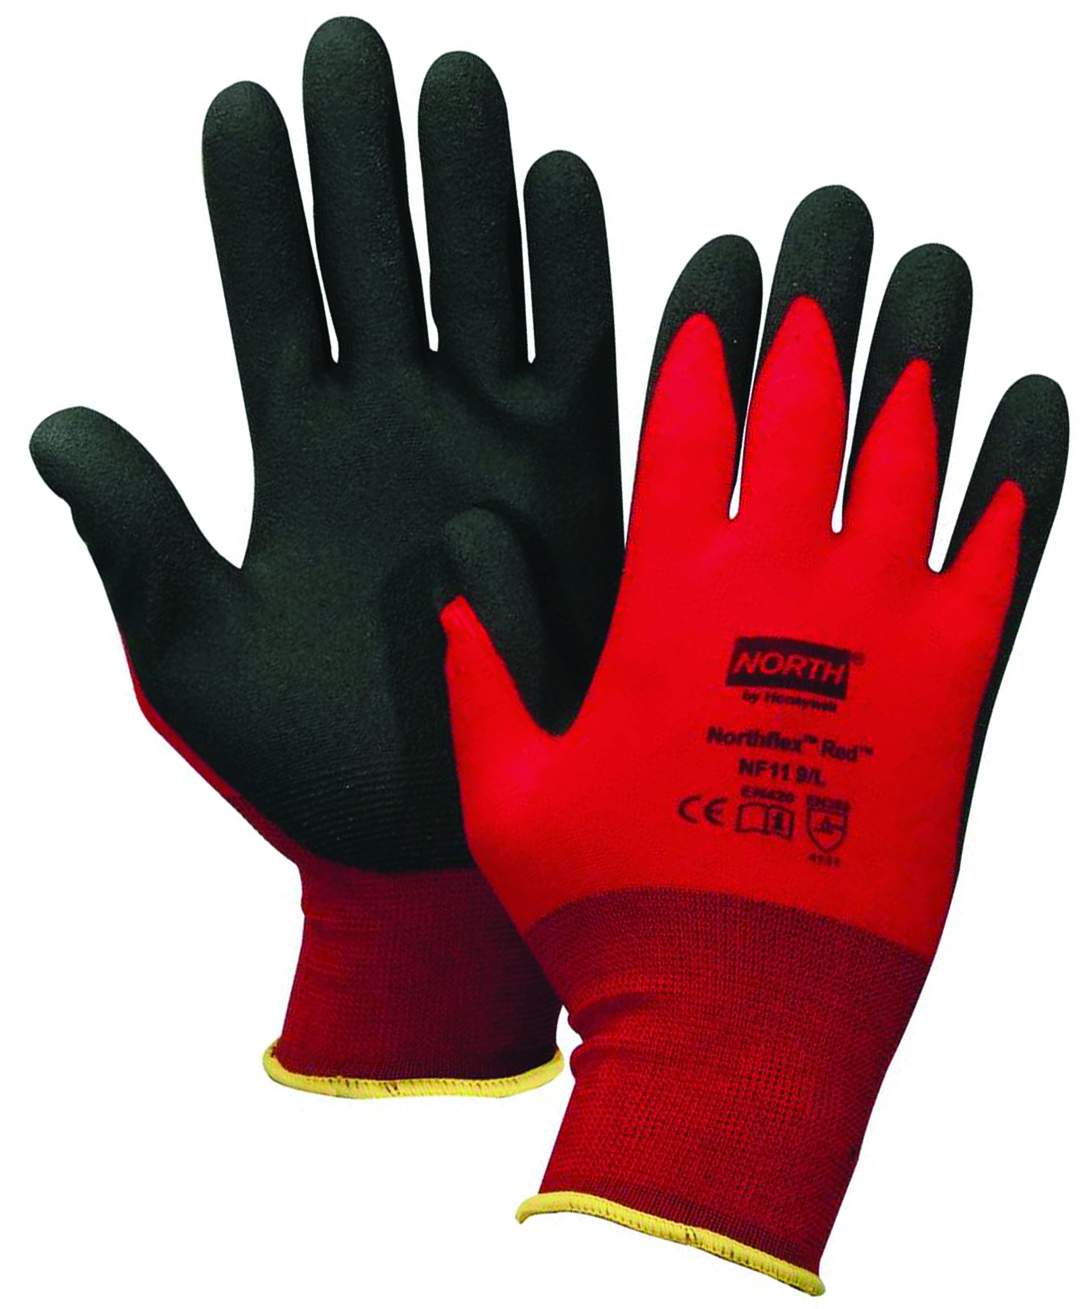 NF11/L - NorthFlex Red NF11 Gloves-General Purpose Gloves-NorthFlex Red Lightweight Gloves, 15-gauge nylon glove with foam PVC coating -Large---UOM: 12/PK